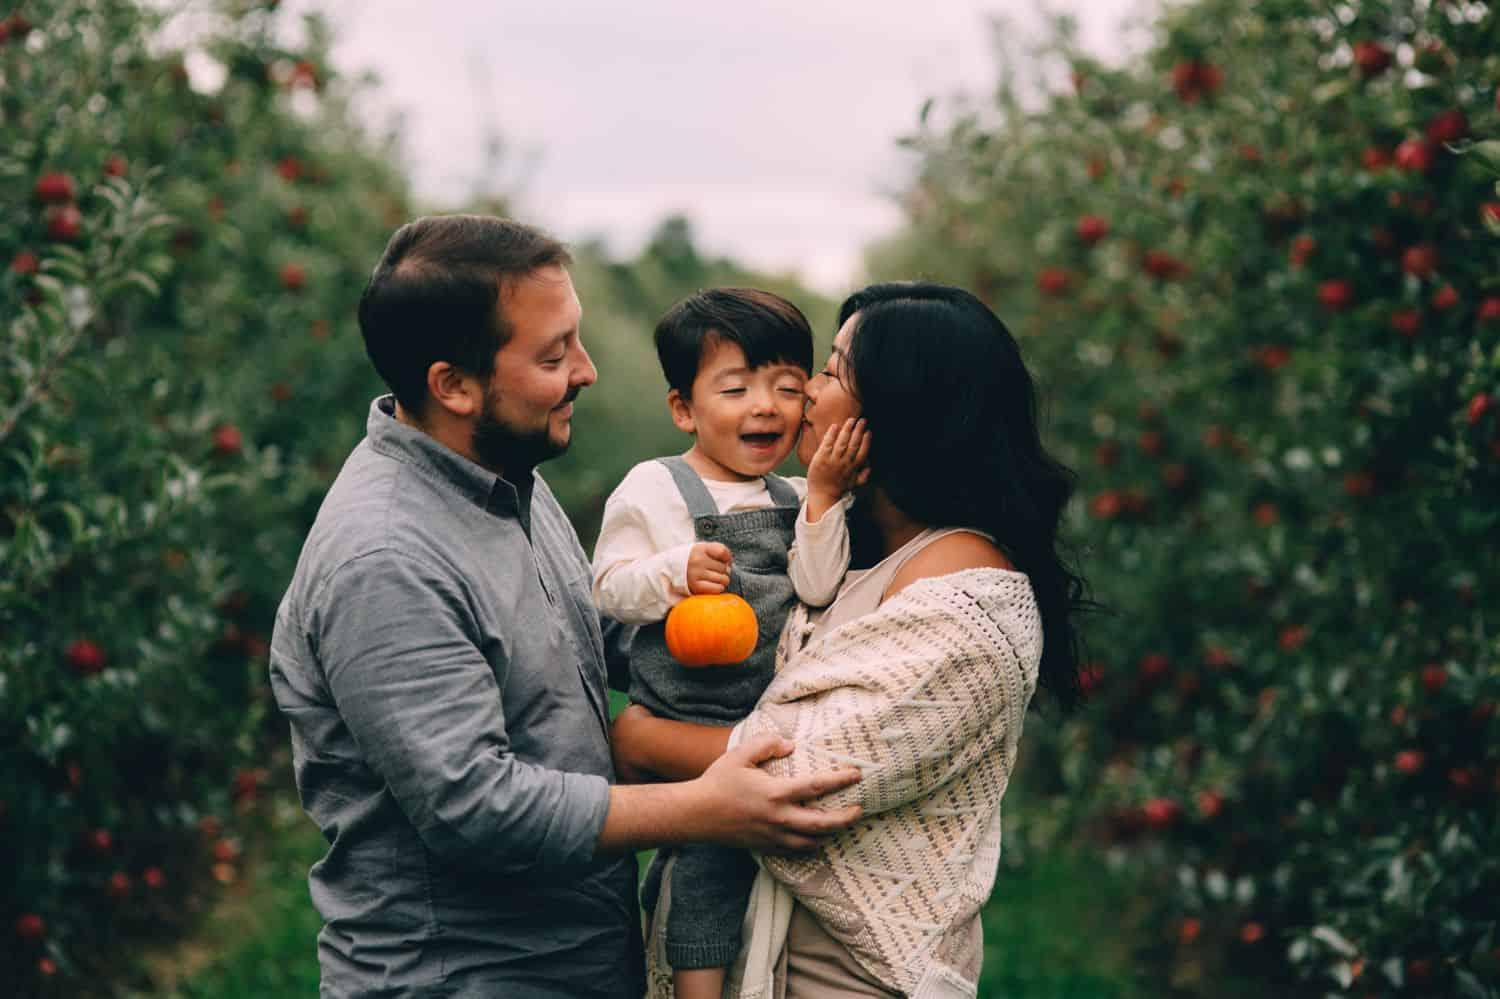 A little boy in overalls is hugged between his parents in the middle of an orchard.